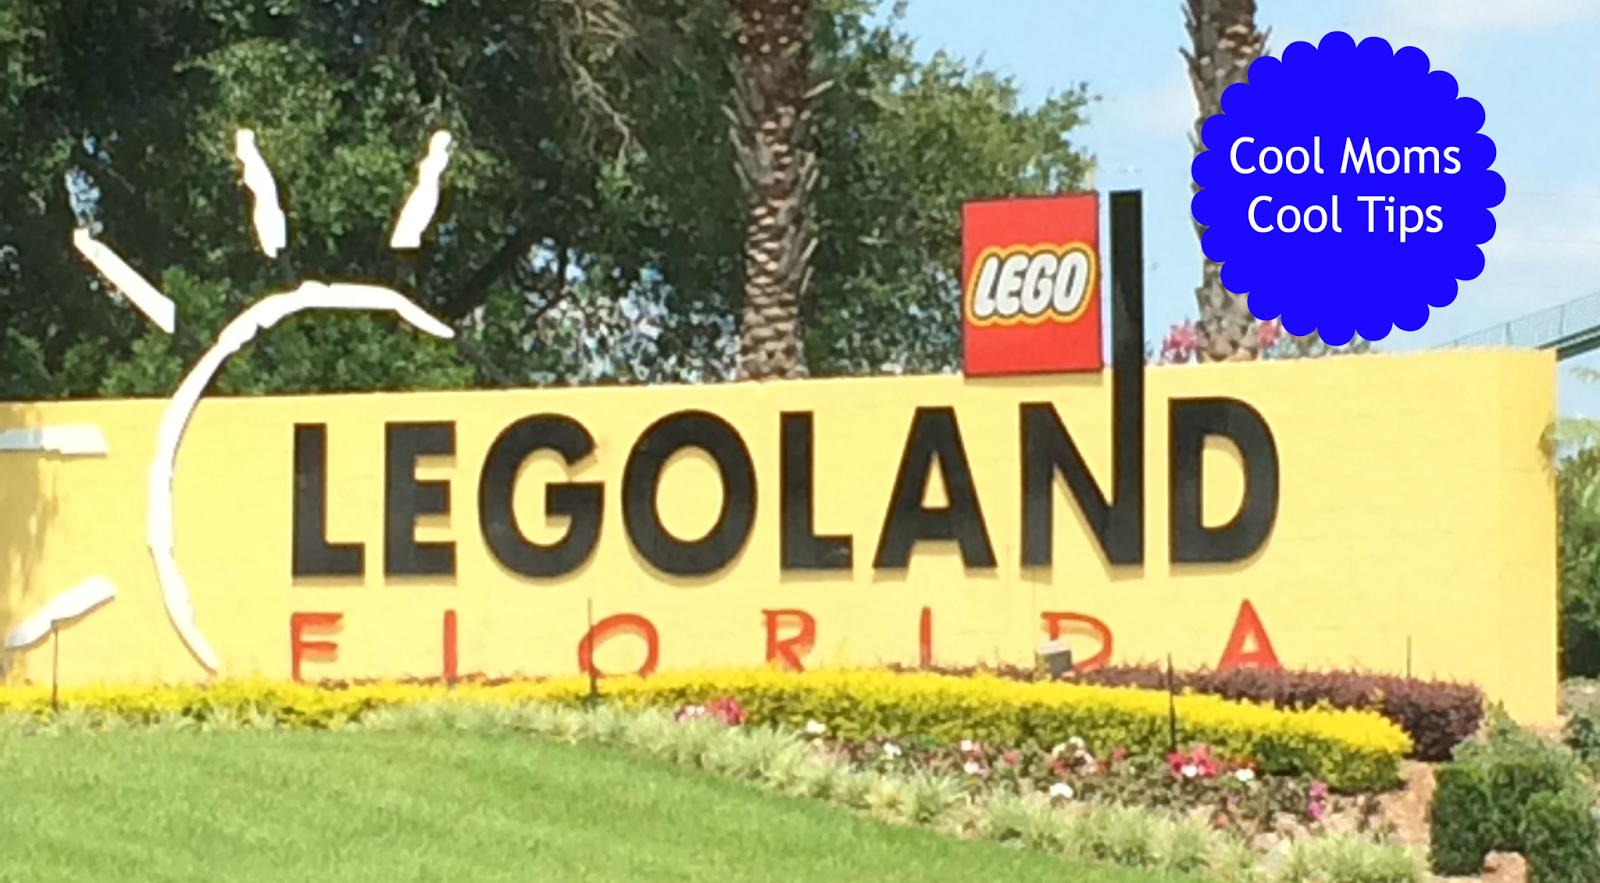 cool moms cool trips travel to legoland entrance